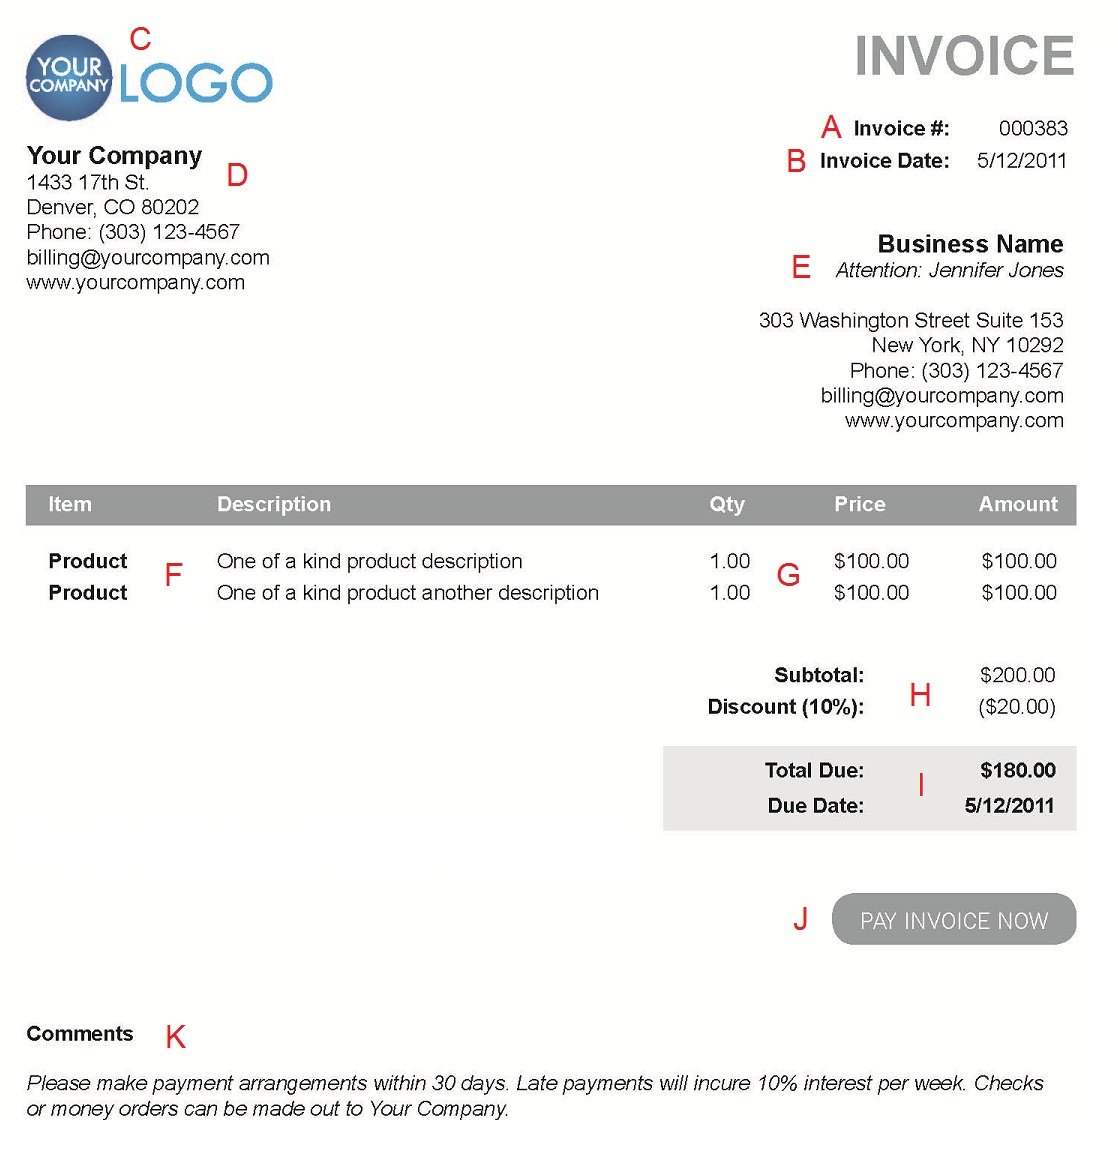 Ultrablogus  Sweet The  Different Sections Of An Electronic Payment Invoice With Extraordinary A  With Amusing Examples Of Invoices For Services Rendered Also Rent Invoice Template Excel In Addition Labor Invoice Template Free And How To Make A Invoice In Excel As Well As Dealer Cost Vs Invoice Additionally Invoice Receipt Book From Paysimplecom With Ultrablogus  Extraordinary The  Different Sections Of An Electronic Payment Invoice With Amusing A  And Sweet Examples Of Invoices For Services Rendered Also Rent Invoice Template Excel In Addition Labor Invoice Template Free From Paysimplecom